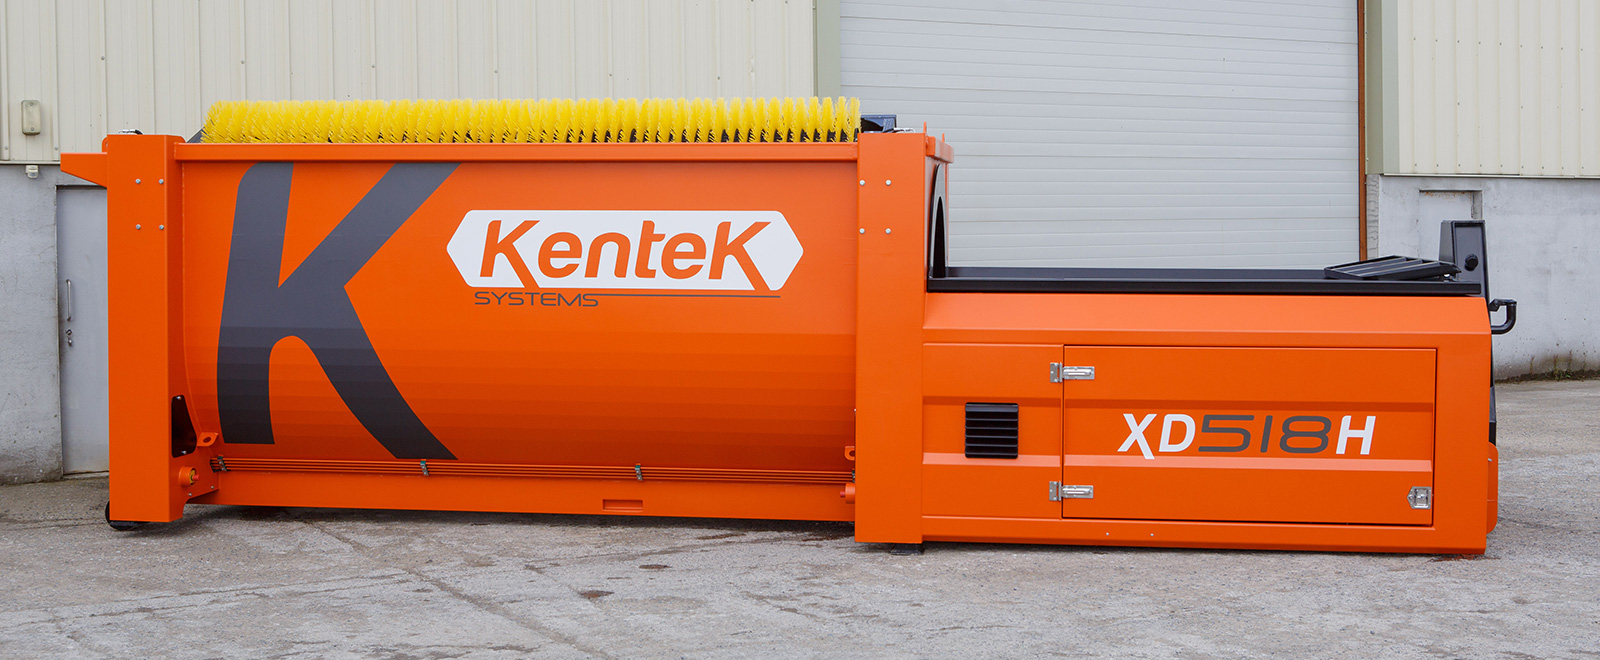 Kentek Systems